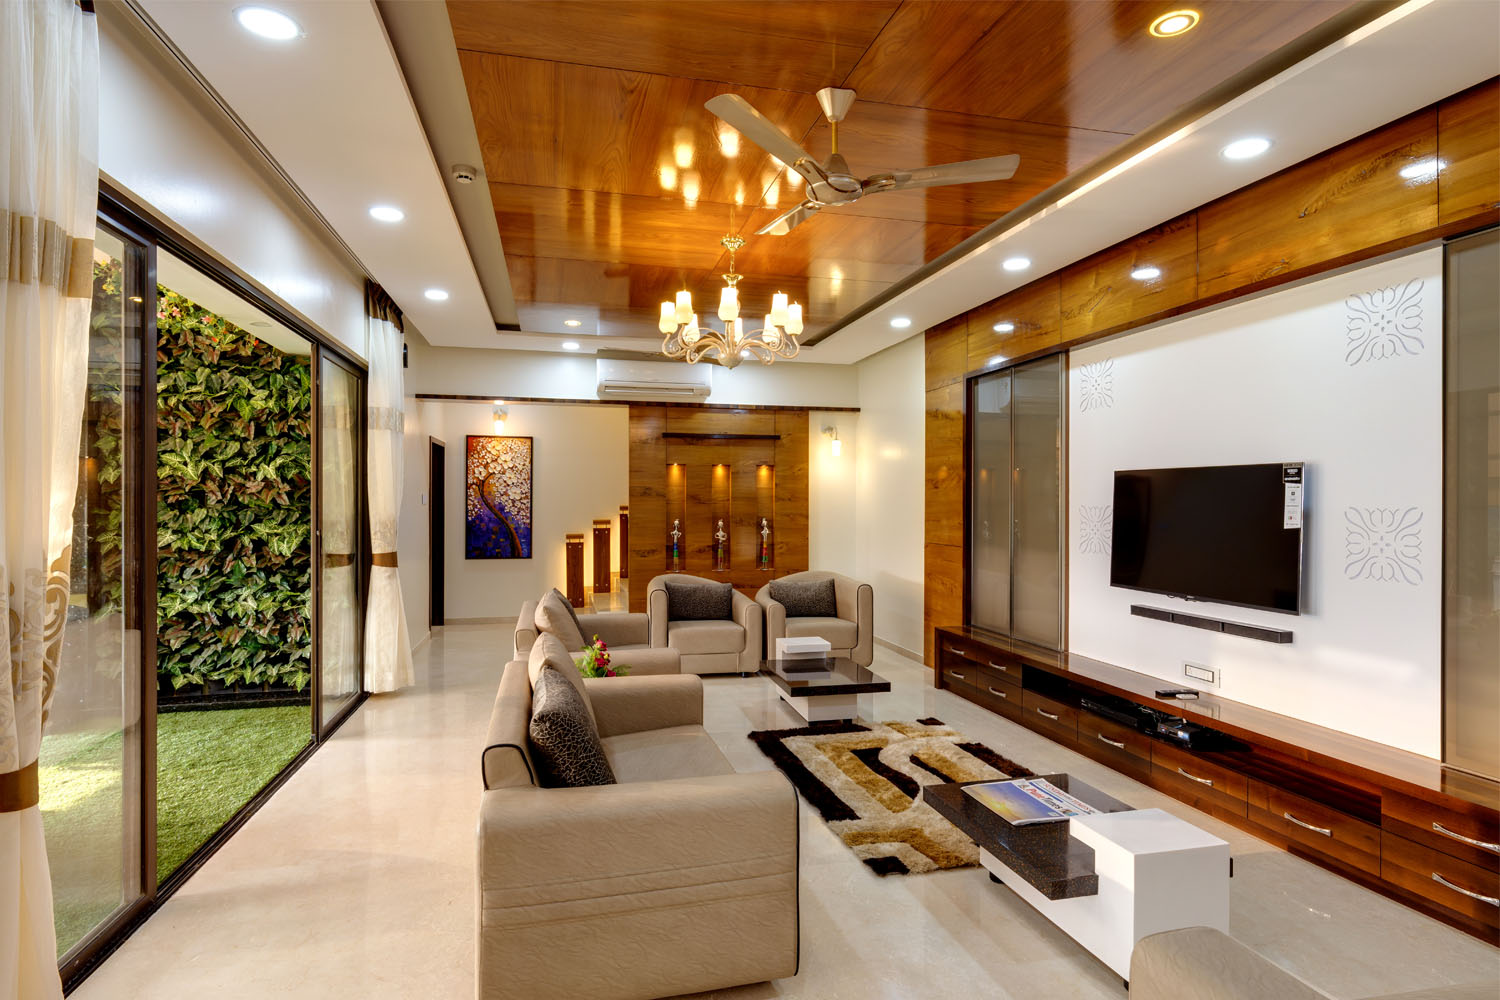 Best interior designer pune nerlekar interior designing for Home by design